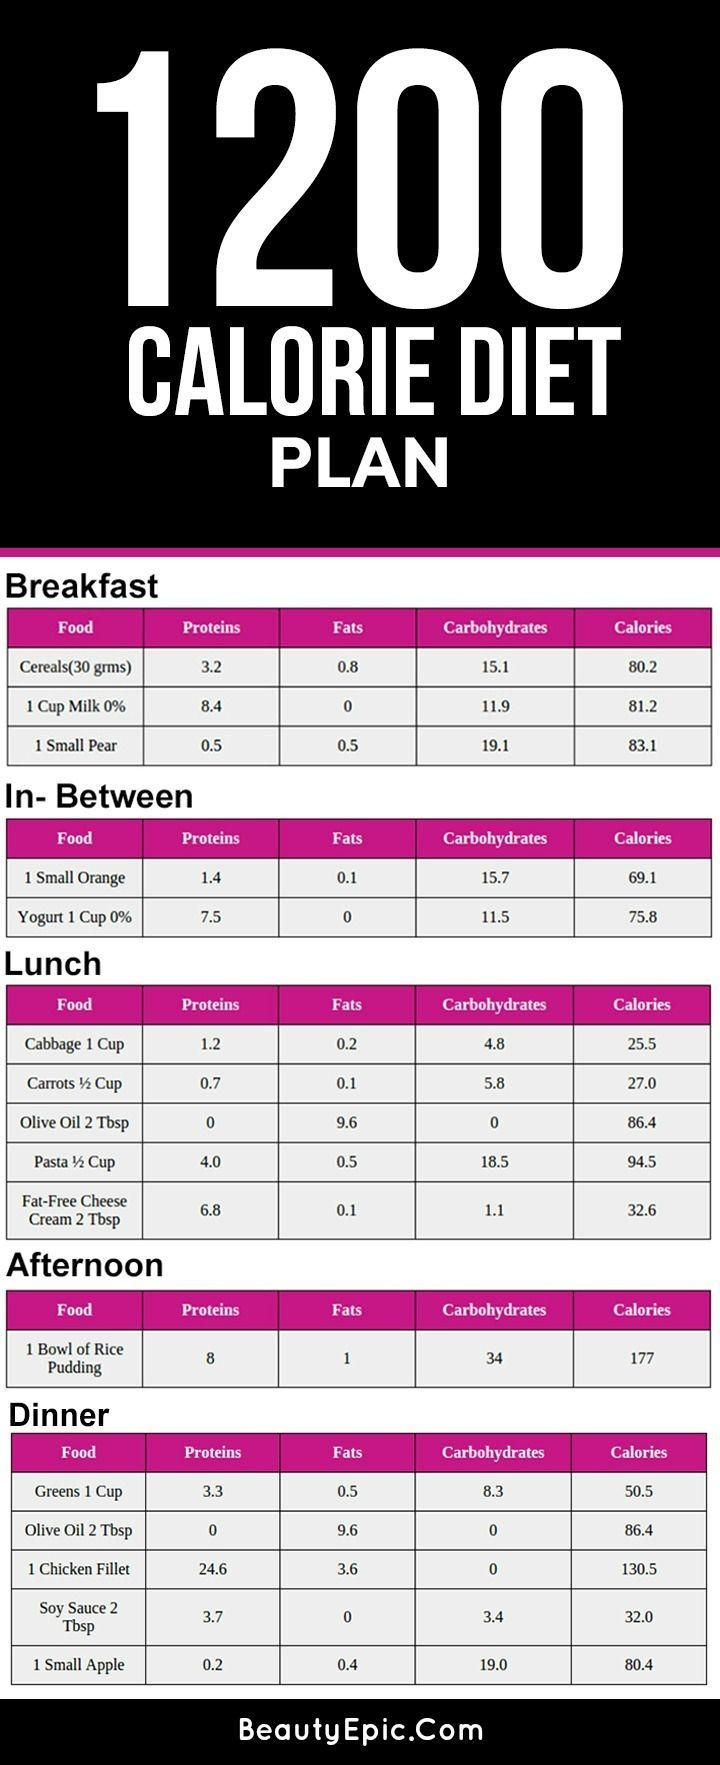 sample healthy meal plan 1200 calories  1200 Calorie Diet: Healthy Diet Plan for Quick Weight Loss - sample healthy meal plan 1200 calories